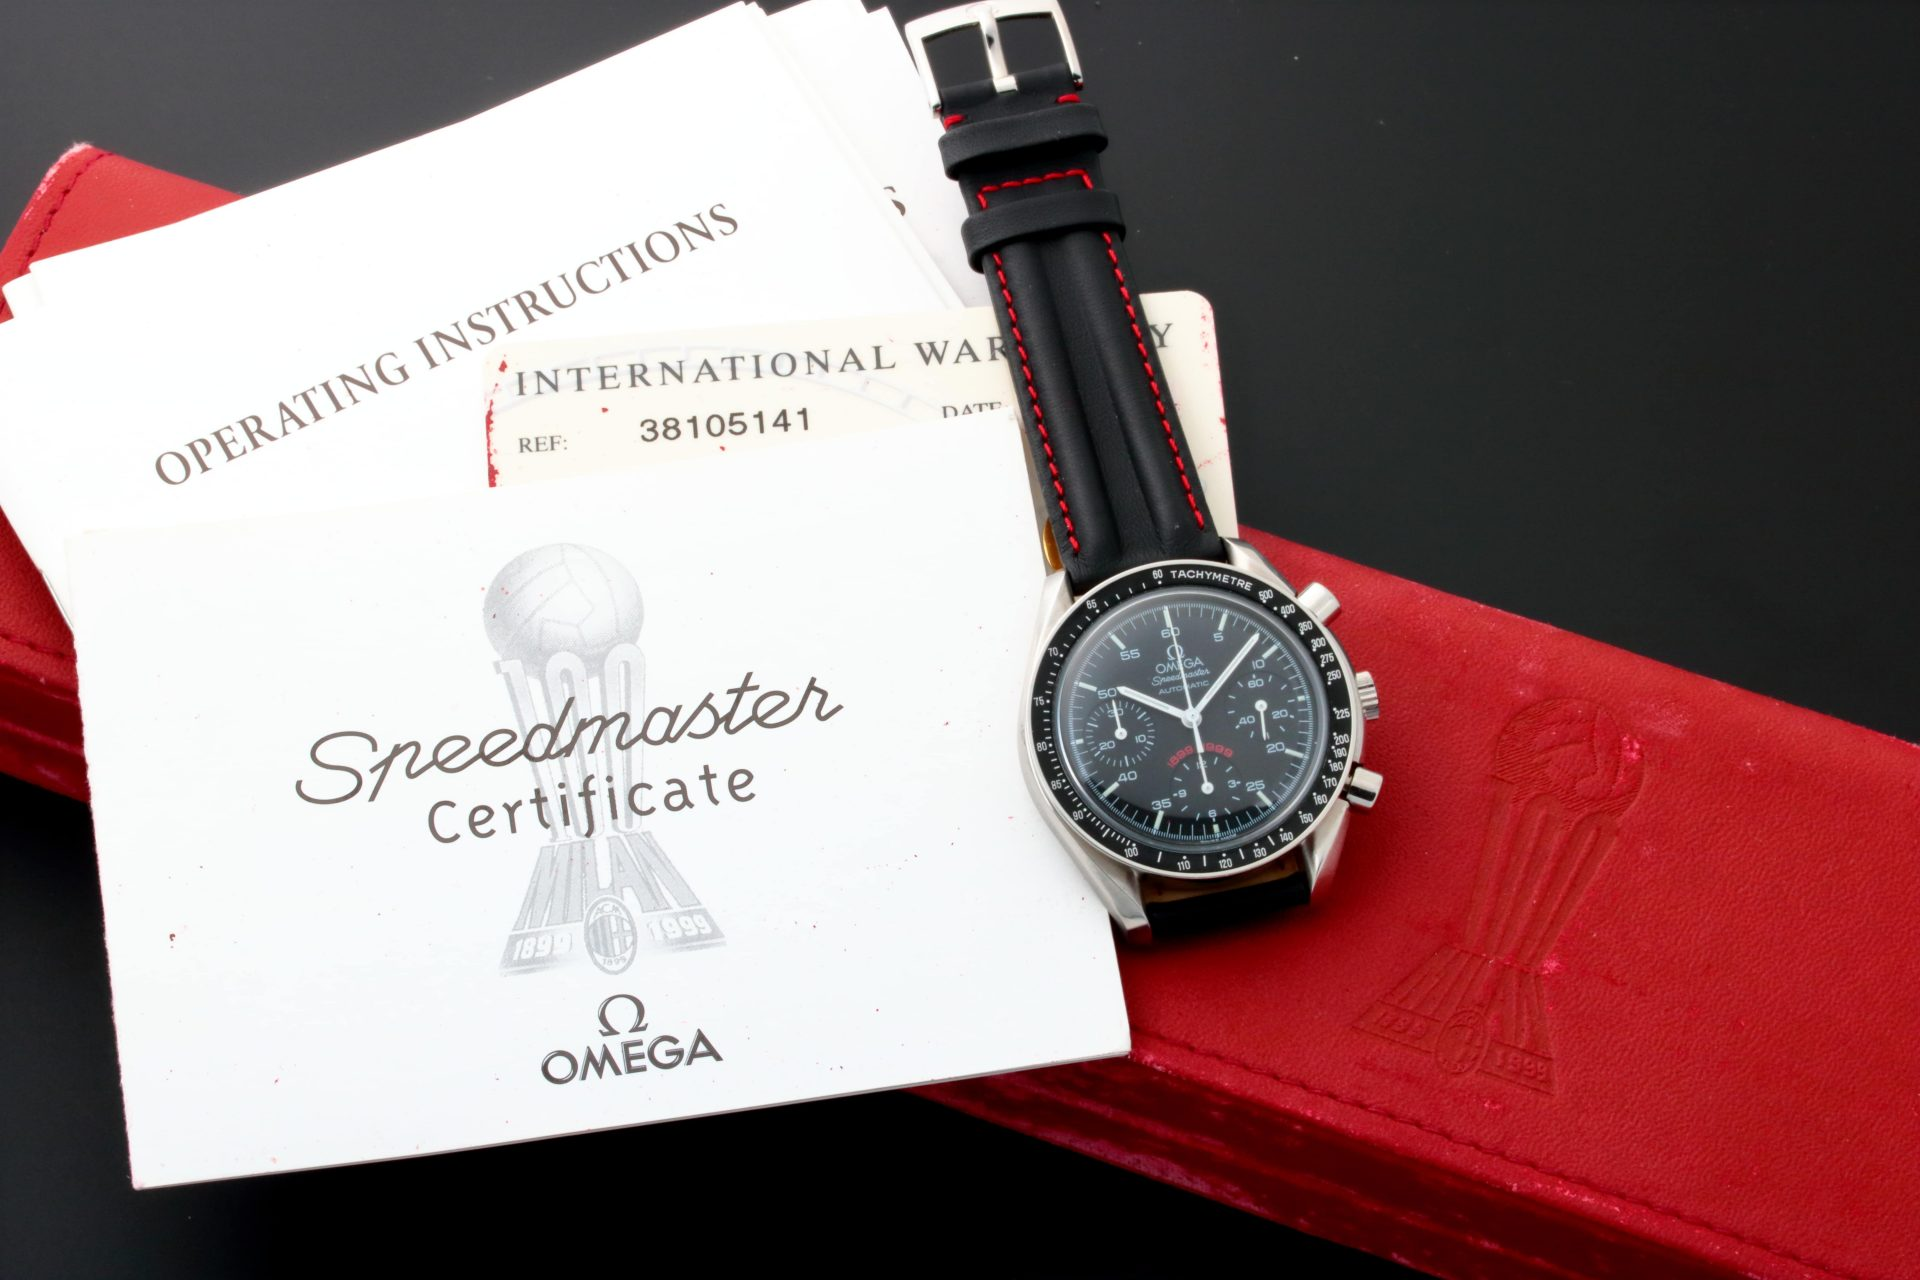 6610 Omega 3810.51.41 Speedmaster A.c. Milan Limited Edition Watch Baer & Bosch Watch Auction